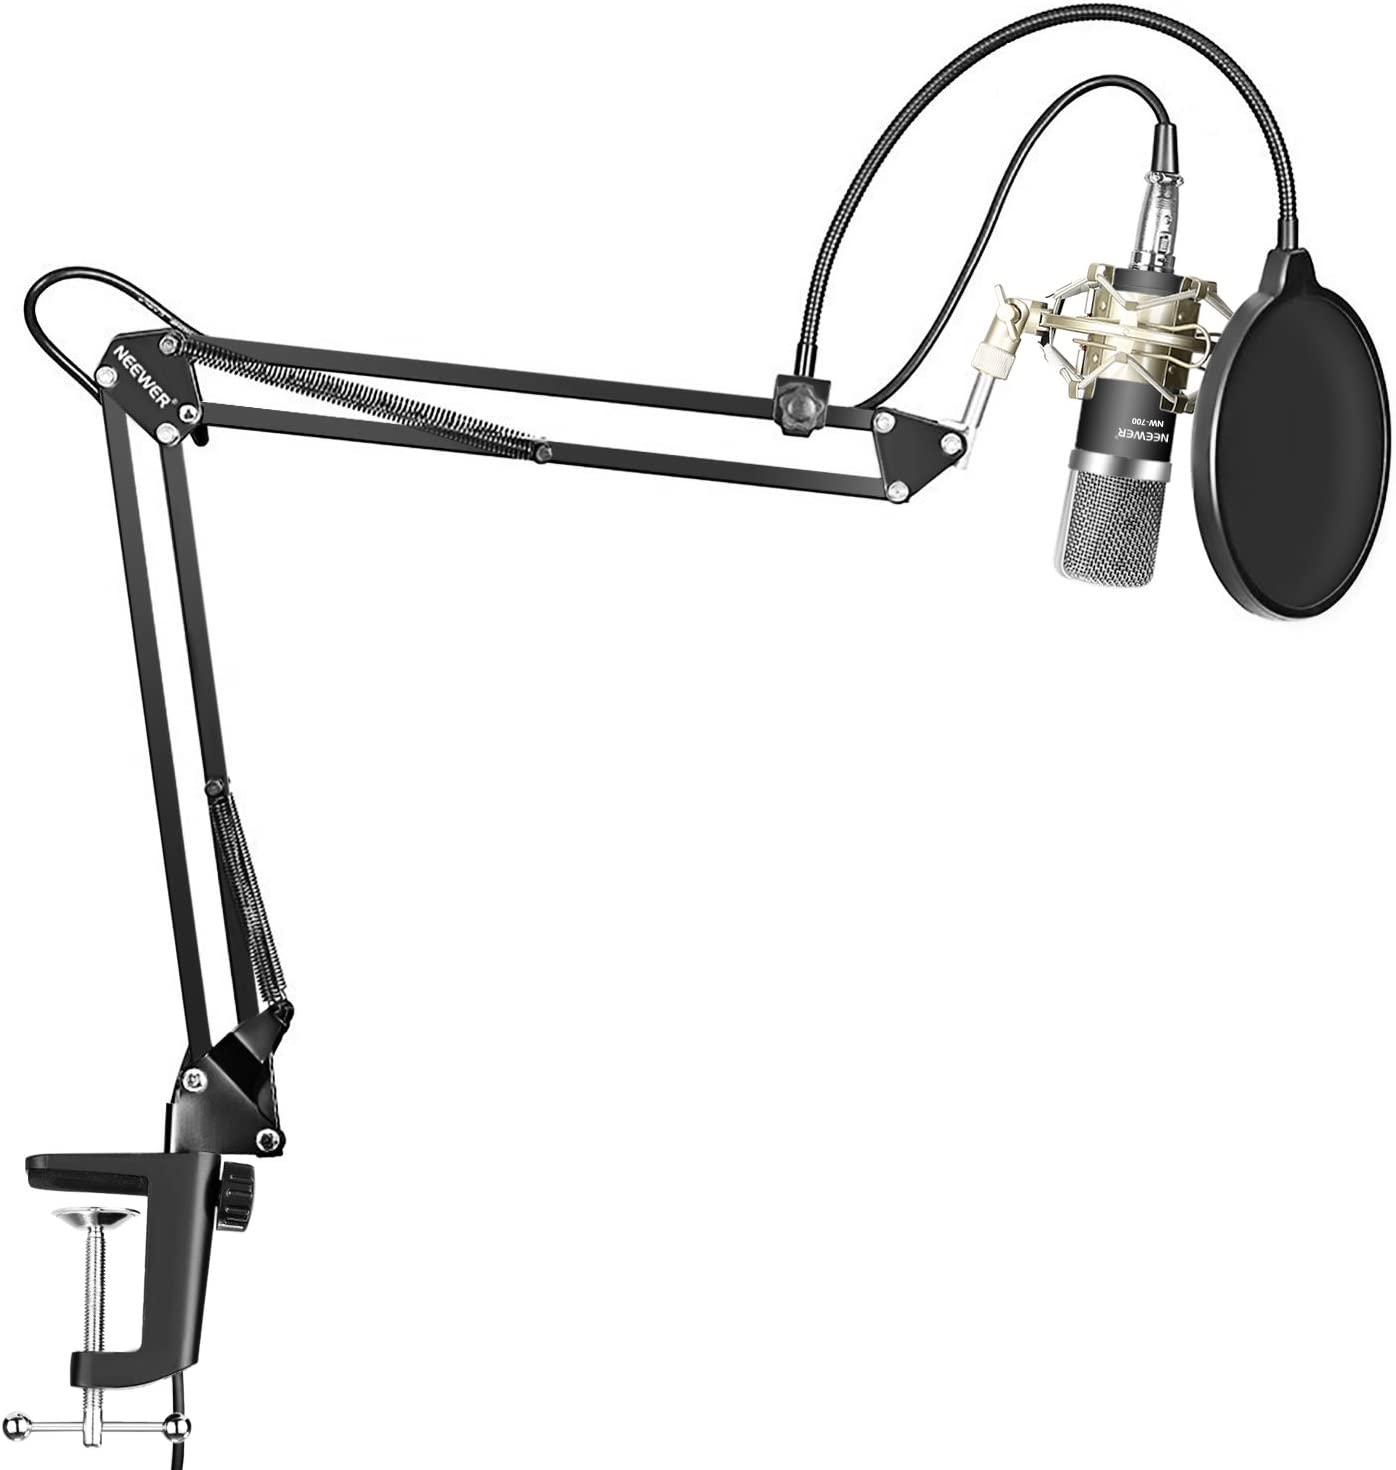 Neewer Condenser Microphone Kit - NW-700 Mic(Black), NW-35 Suspension Boom Scissor Arm Stand with Mount Clamp, Shock Mount (Silver), and Pop Filter for Home Studio Studio Broadcasting Recording